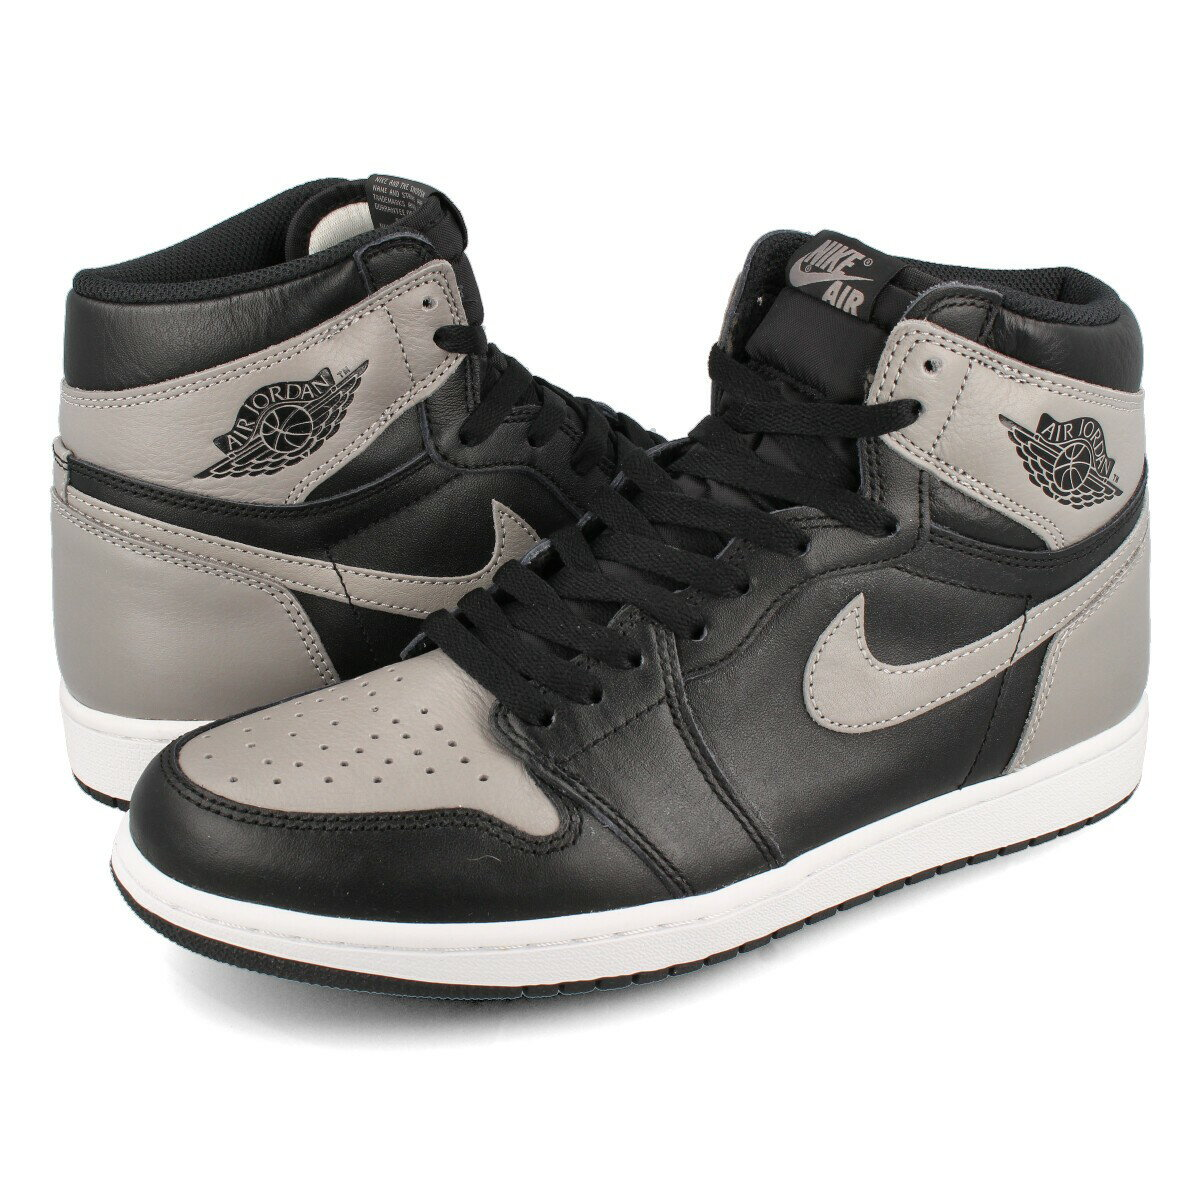 NIKE AIR JORDAN 1 RETRO HIGH OG 【SHADOW】 ナイキ エア ジョーダン 1 レトロ ハイ OG BLACK/MEDIUM GREY/WHITE 555088-013